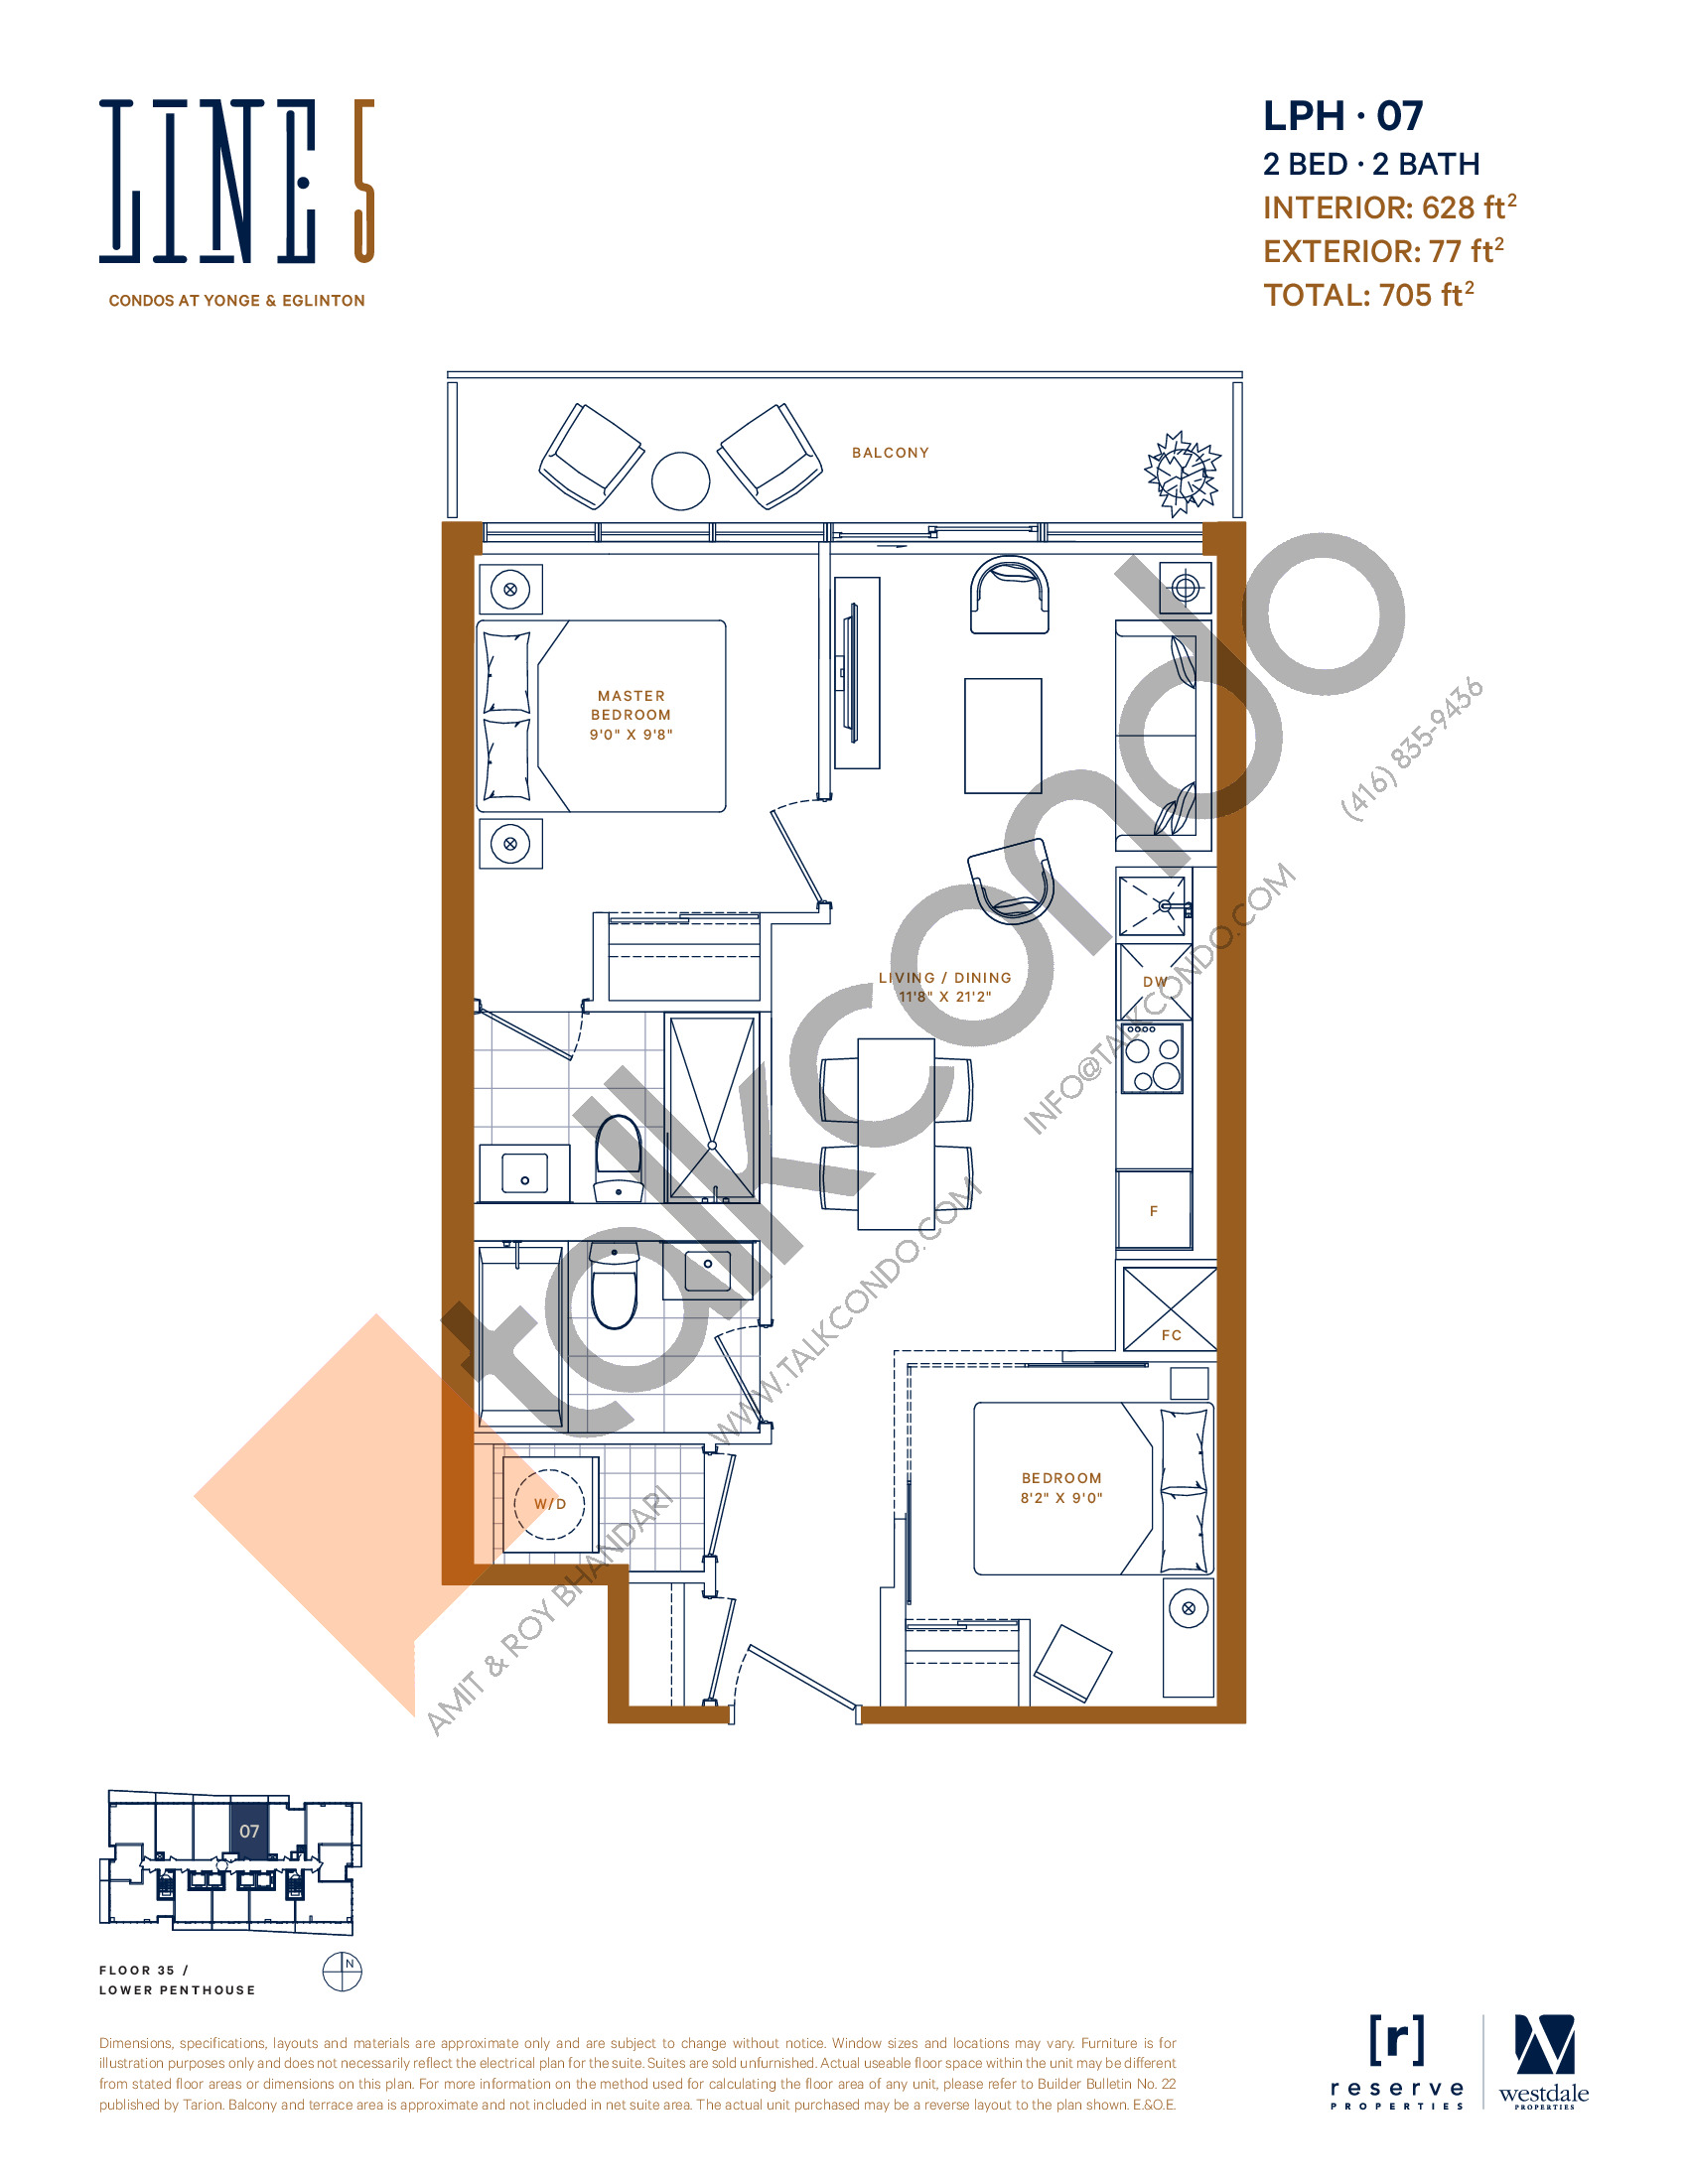 LPH-07 Floor Plan at Line 5 South Tower Condos - 628 sq.ft